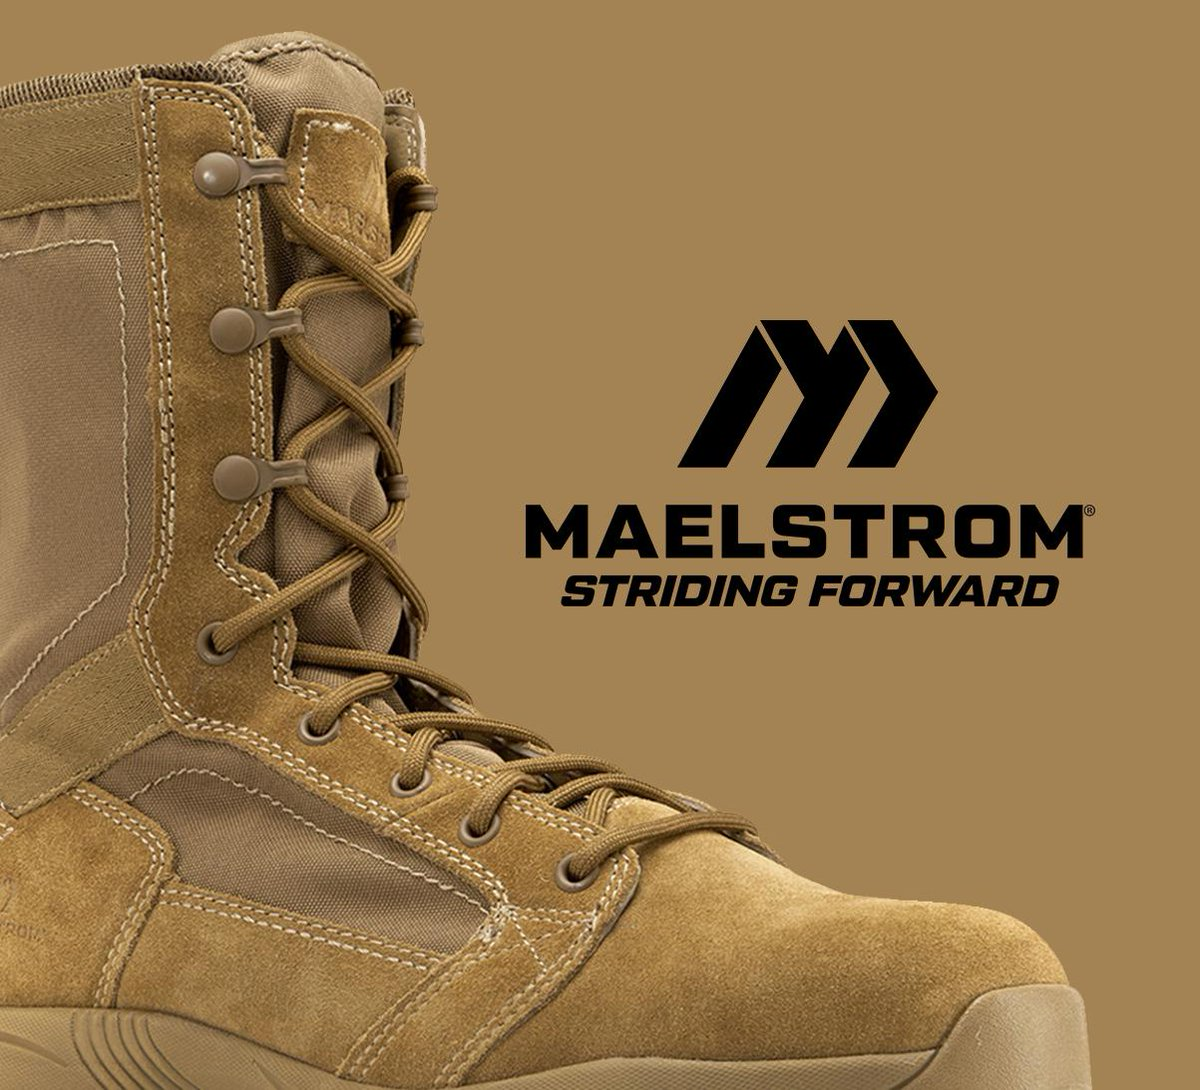 Maelstrom Footwear Maelstromboots Twitter The description is pretty straightforward and while discussing it with. maelstrom footwear maelstromboots